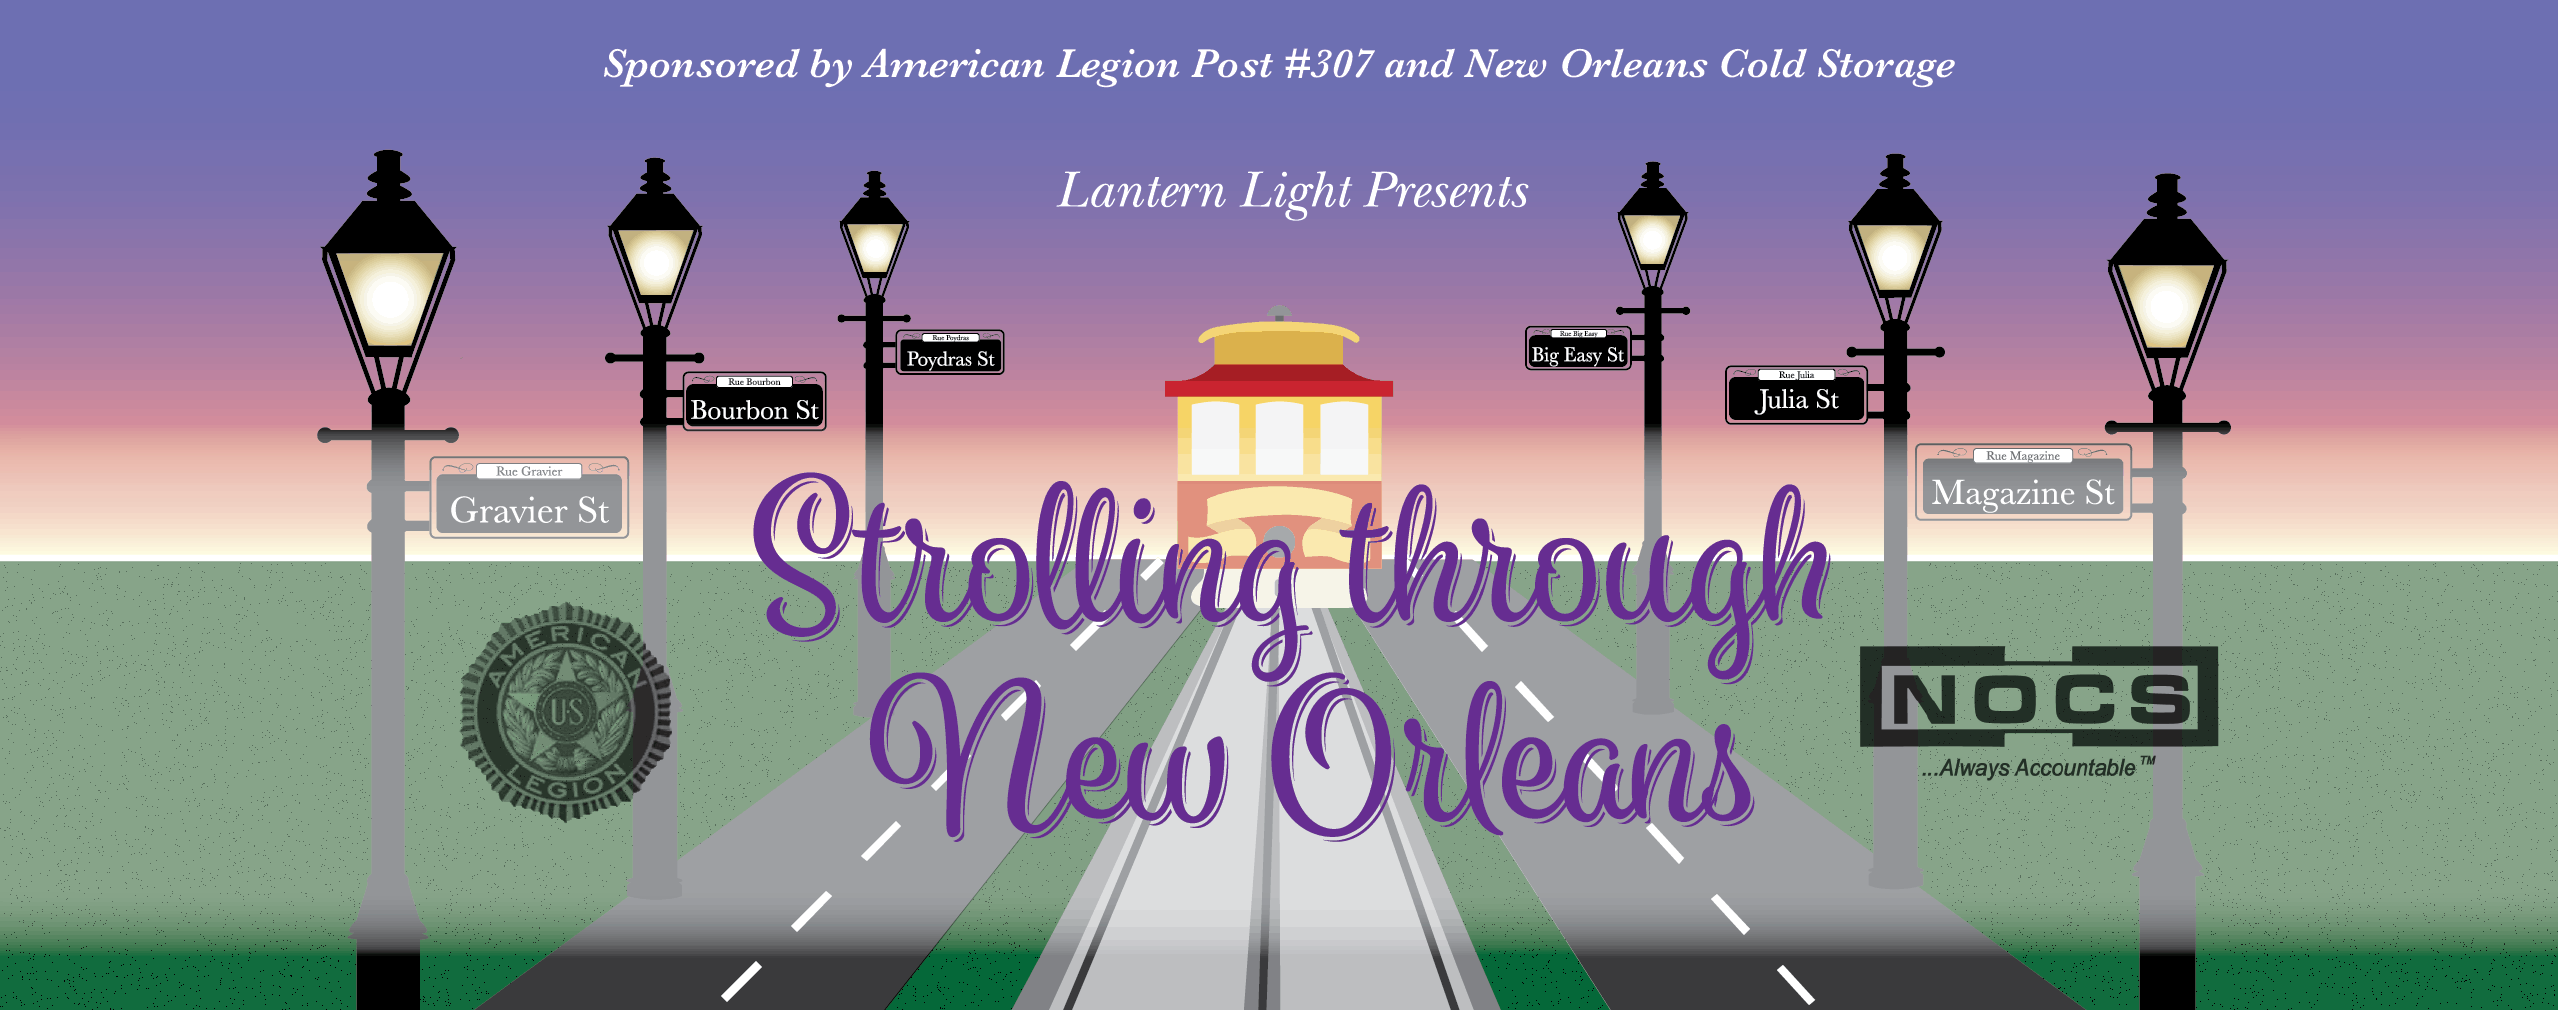 Strolling Through New Orleans Sponsored by the American Legion Post #307 and New Orleans Cold Storage & Strolling Through New Orleans: Sponsored by the American Legion Post ...